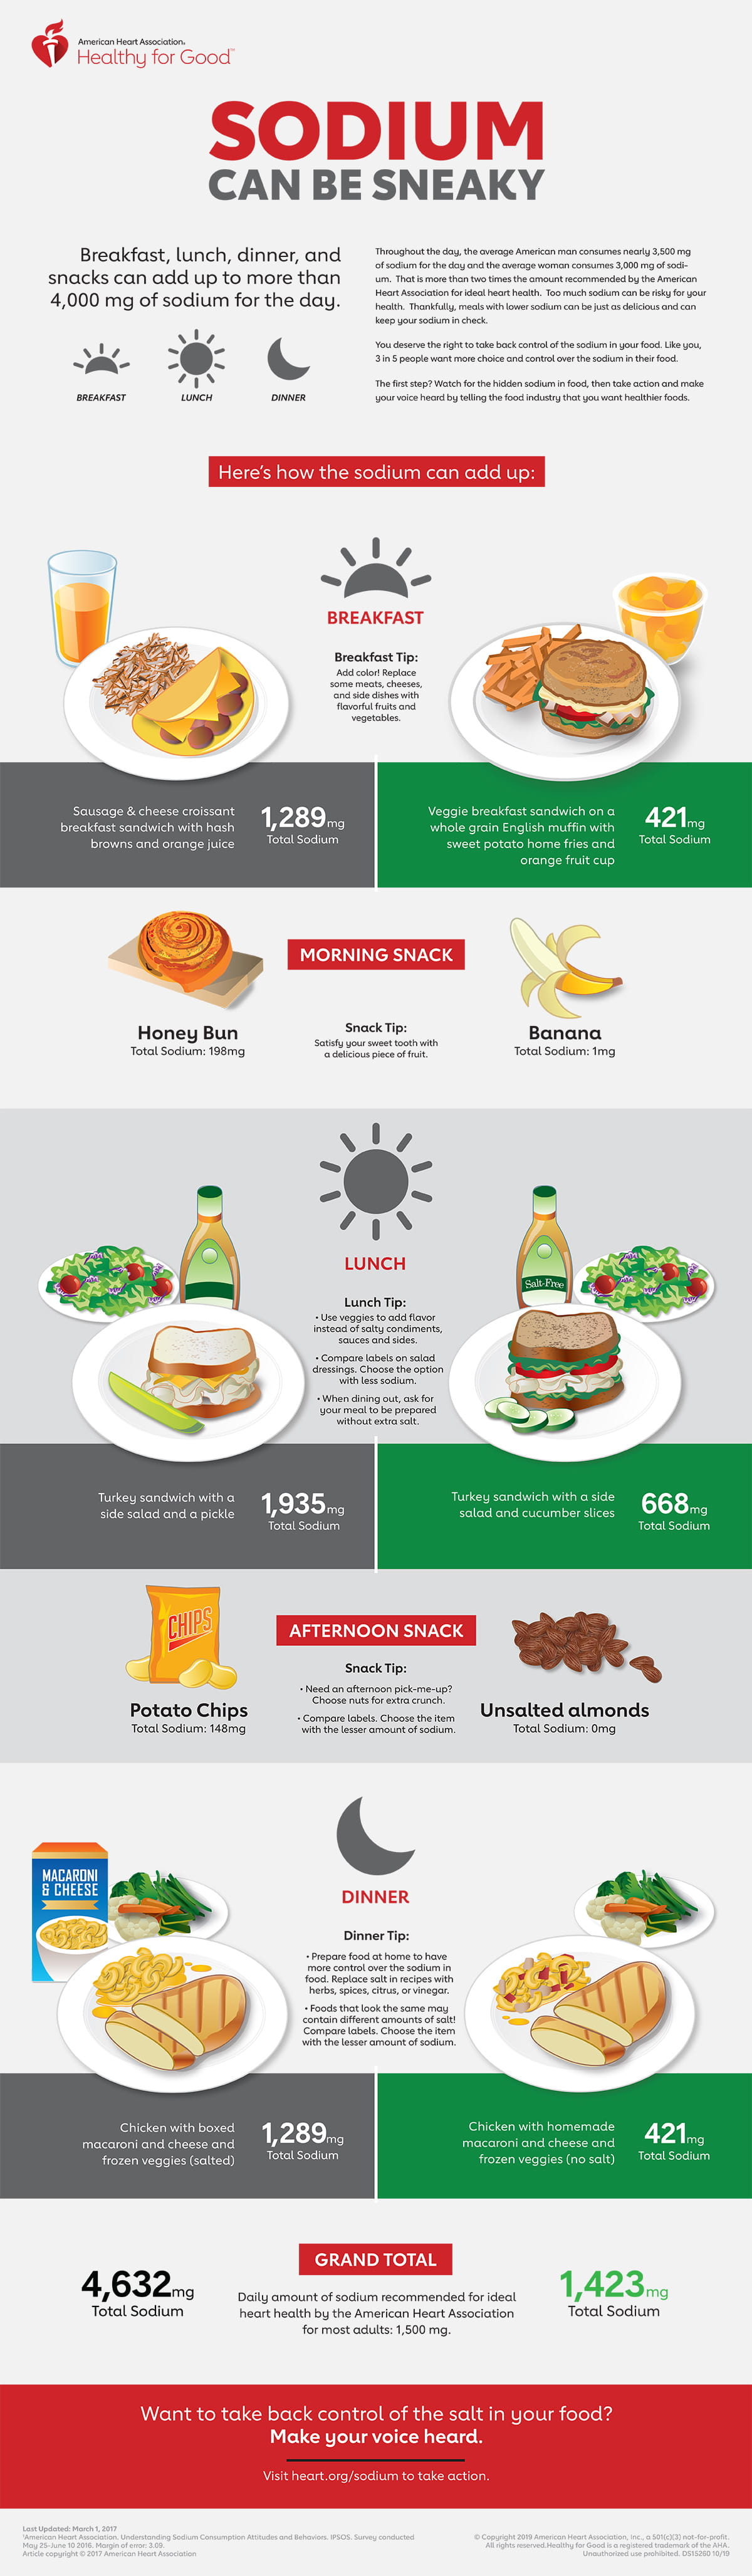 Sodium Can be Sneaky Infographic